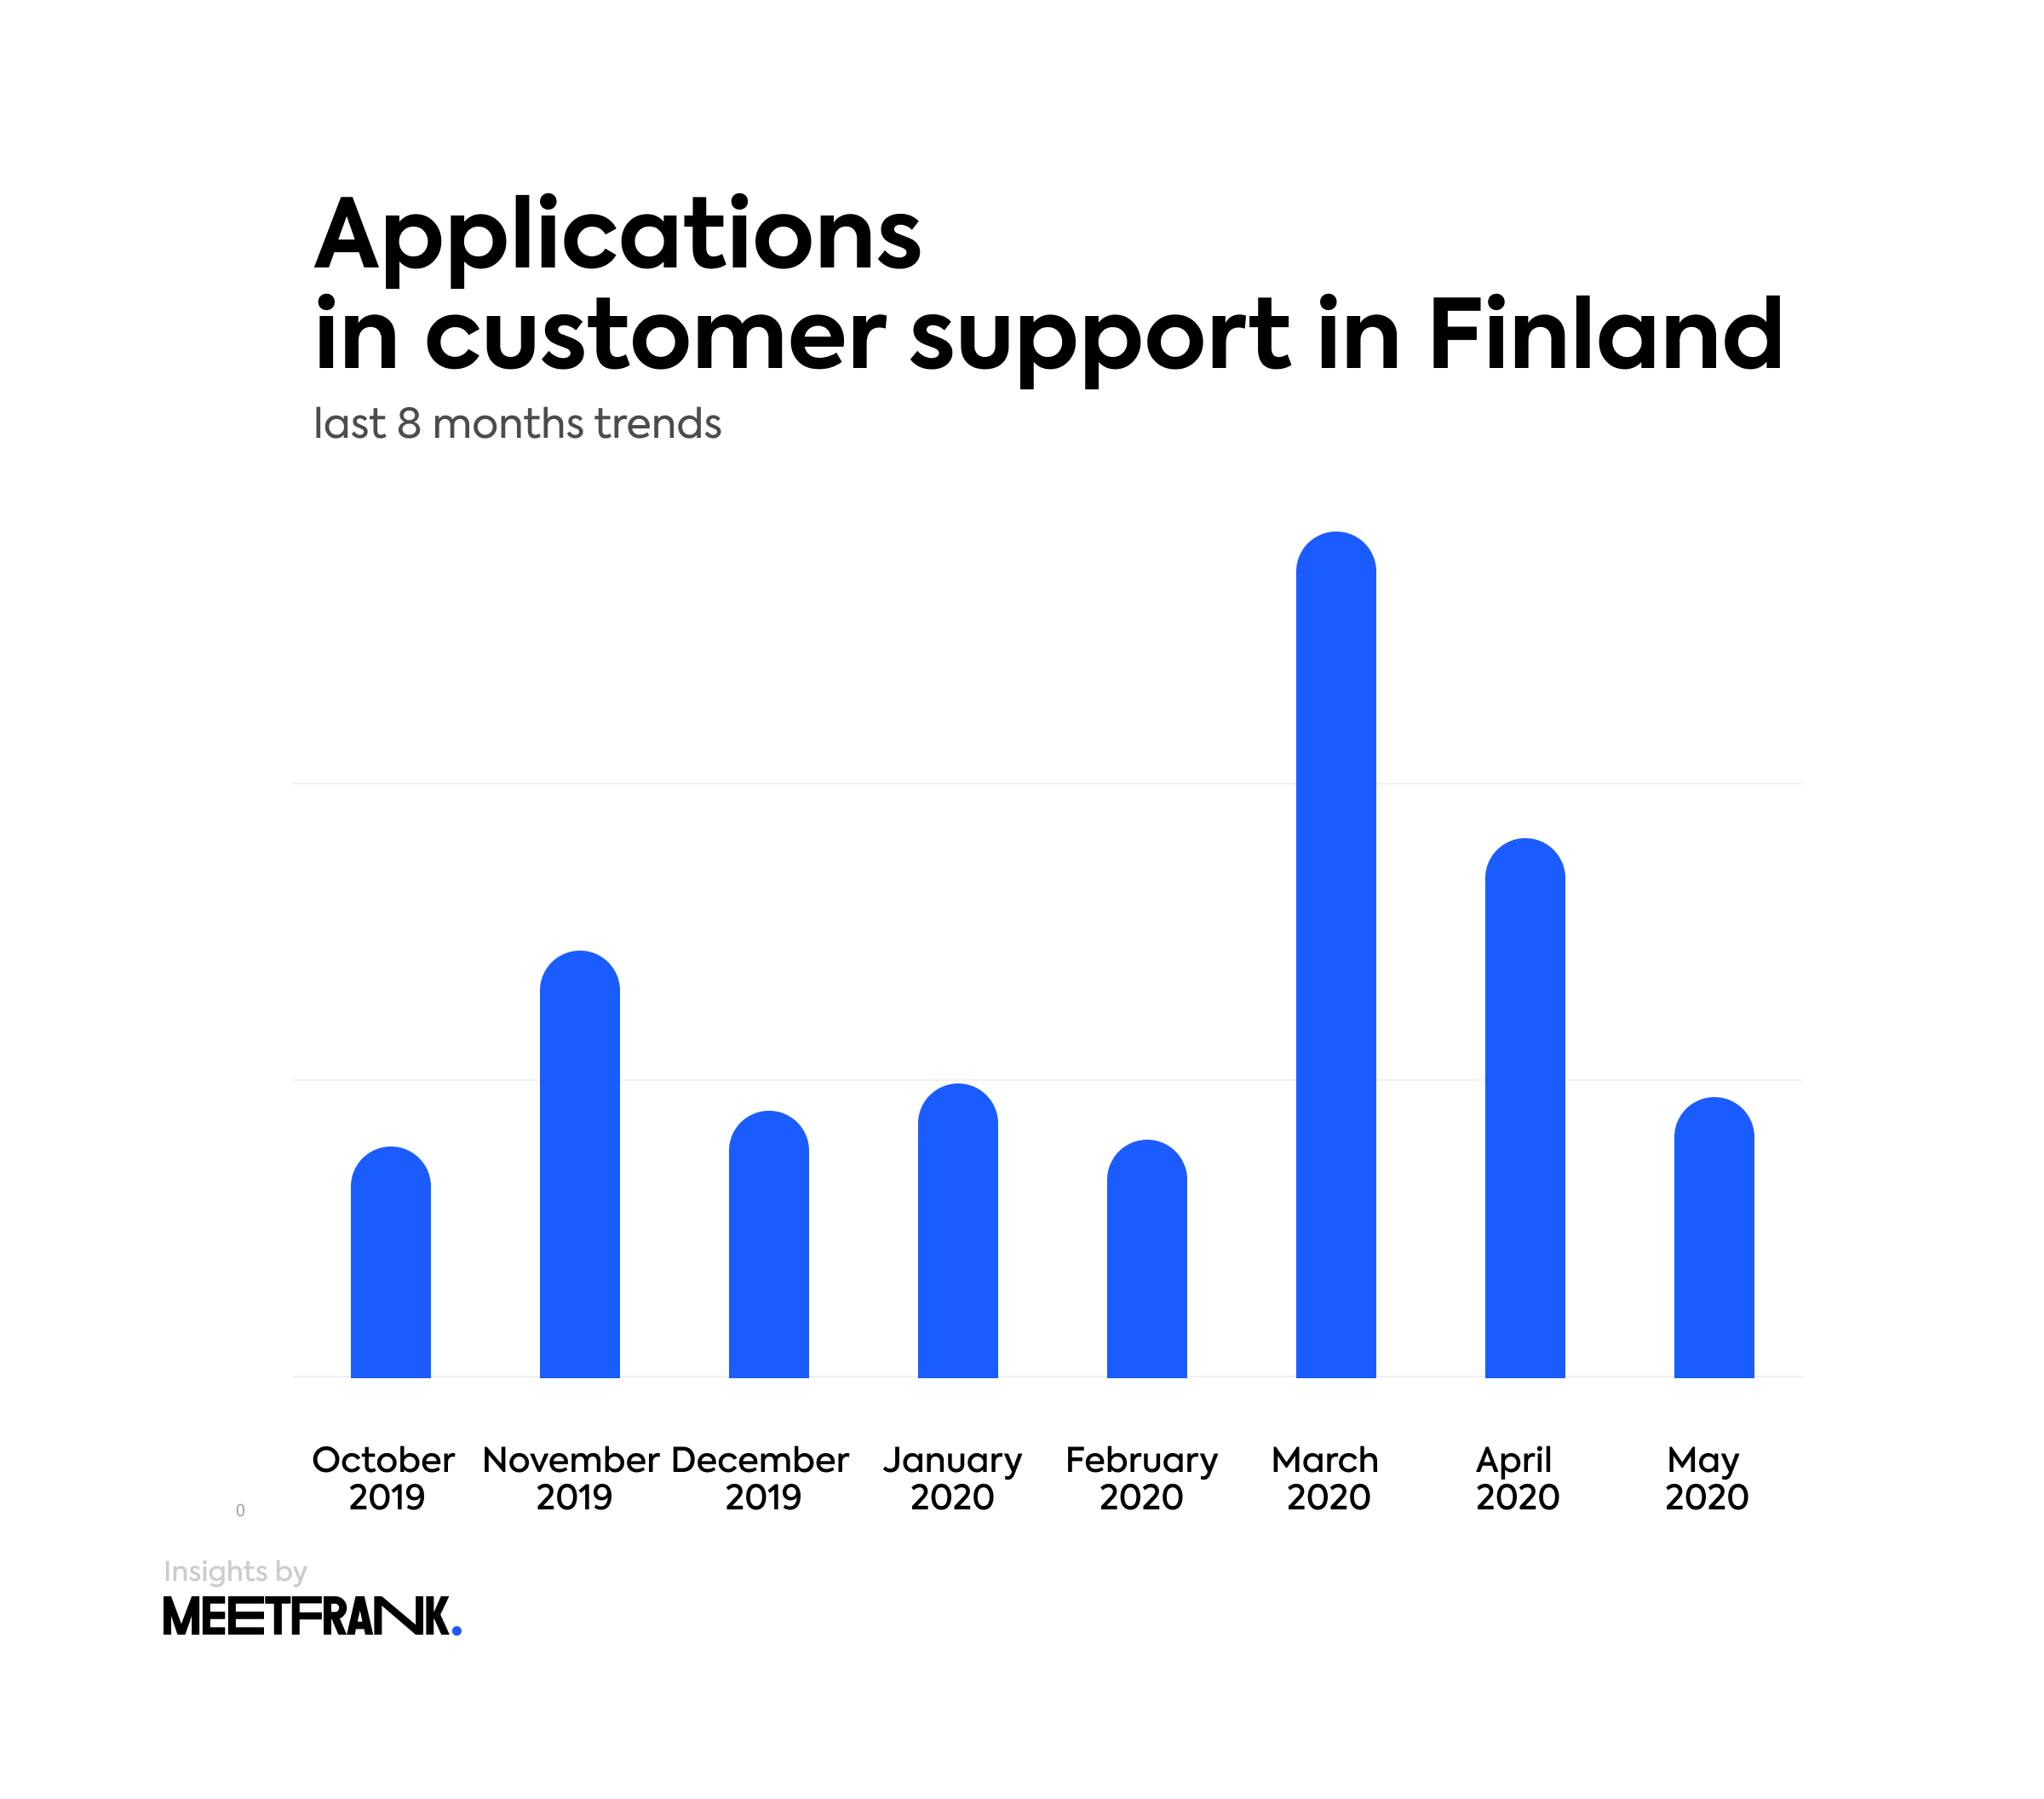 job applications in customer support in Finland